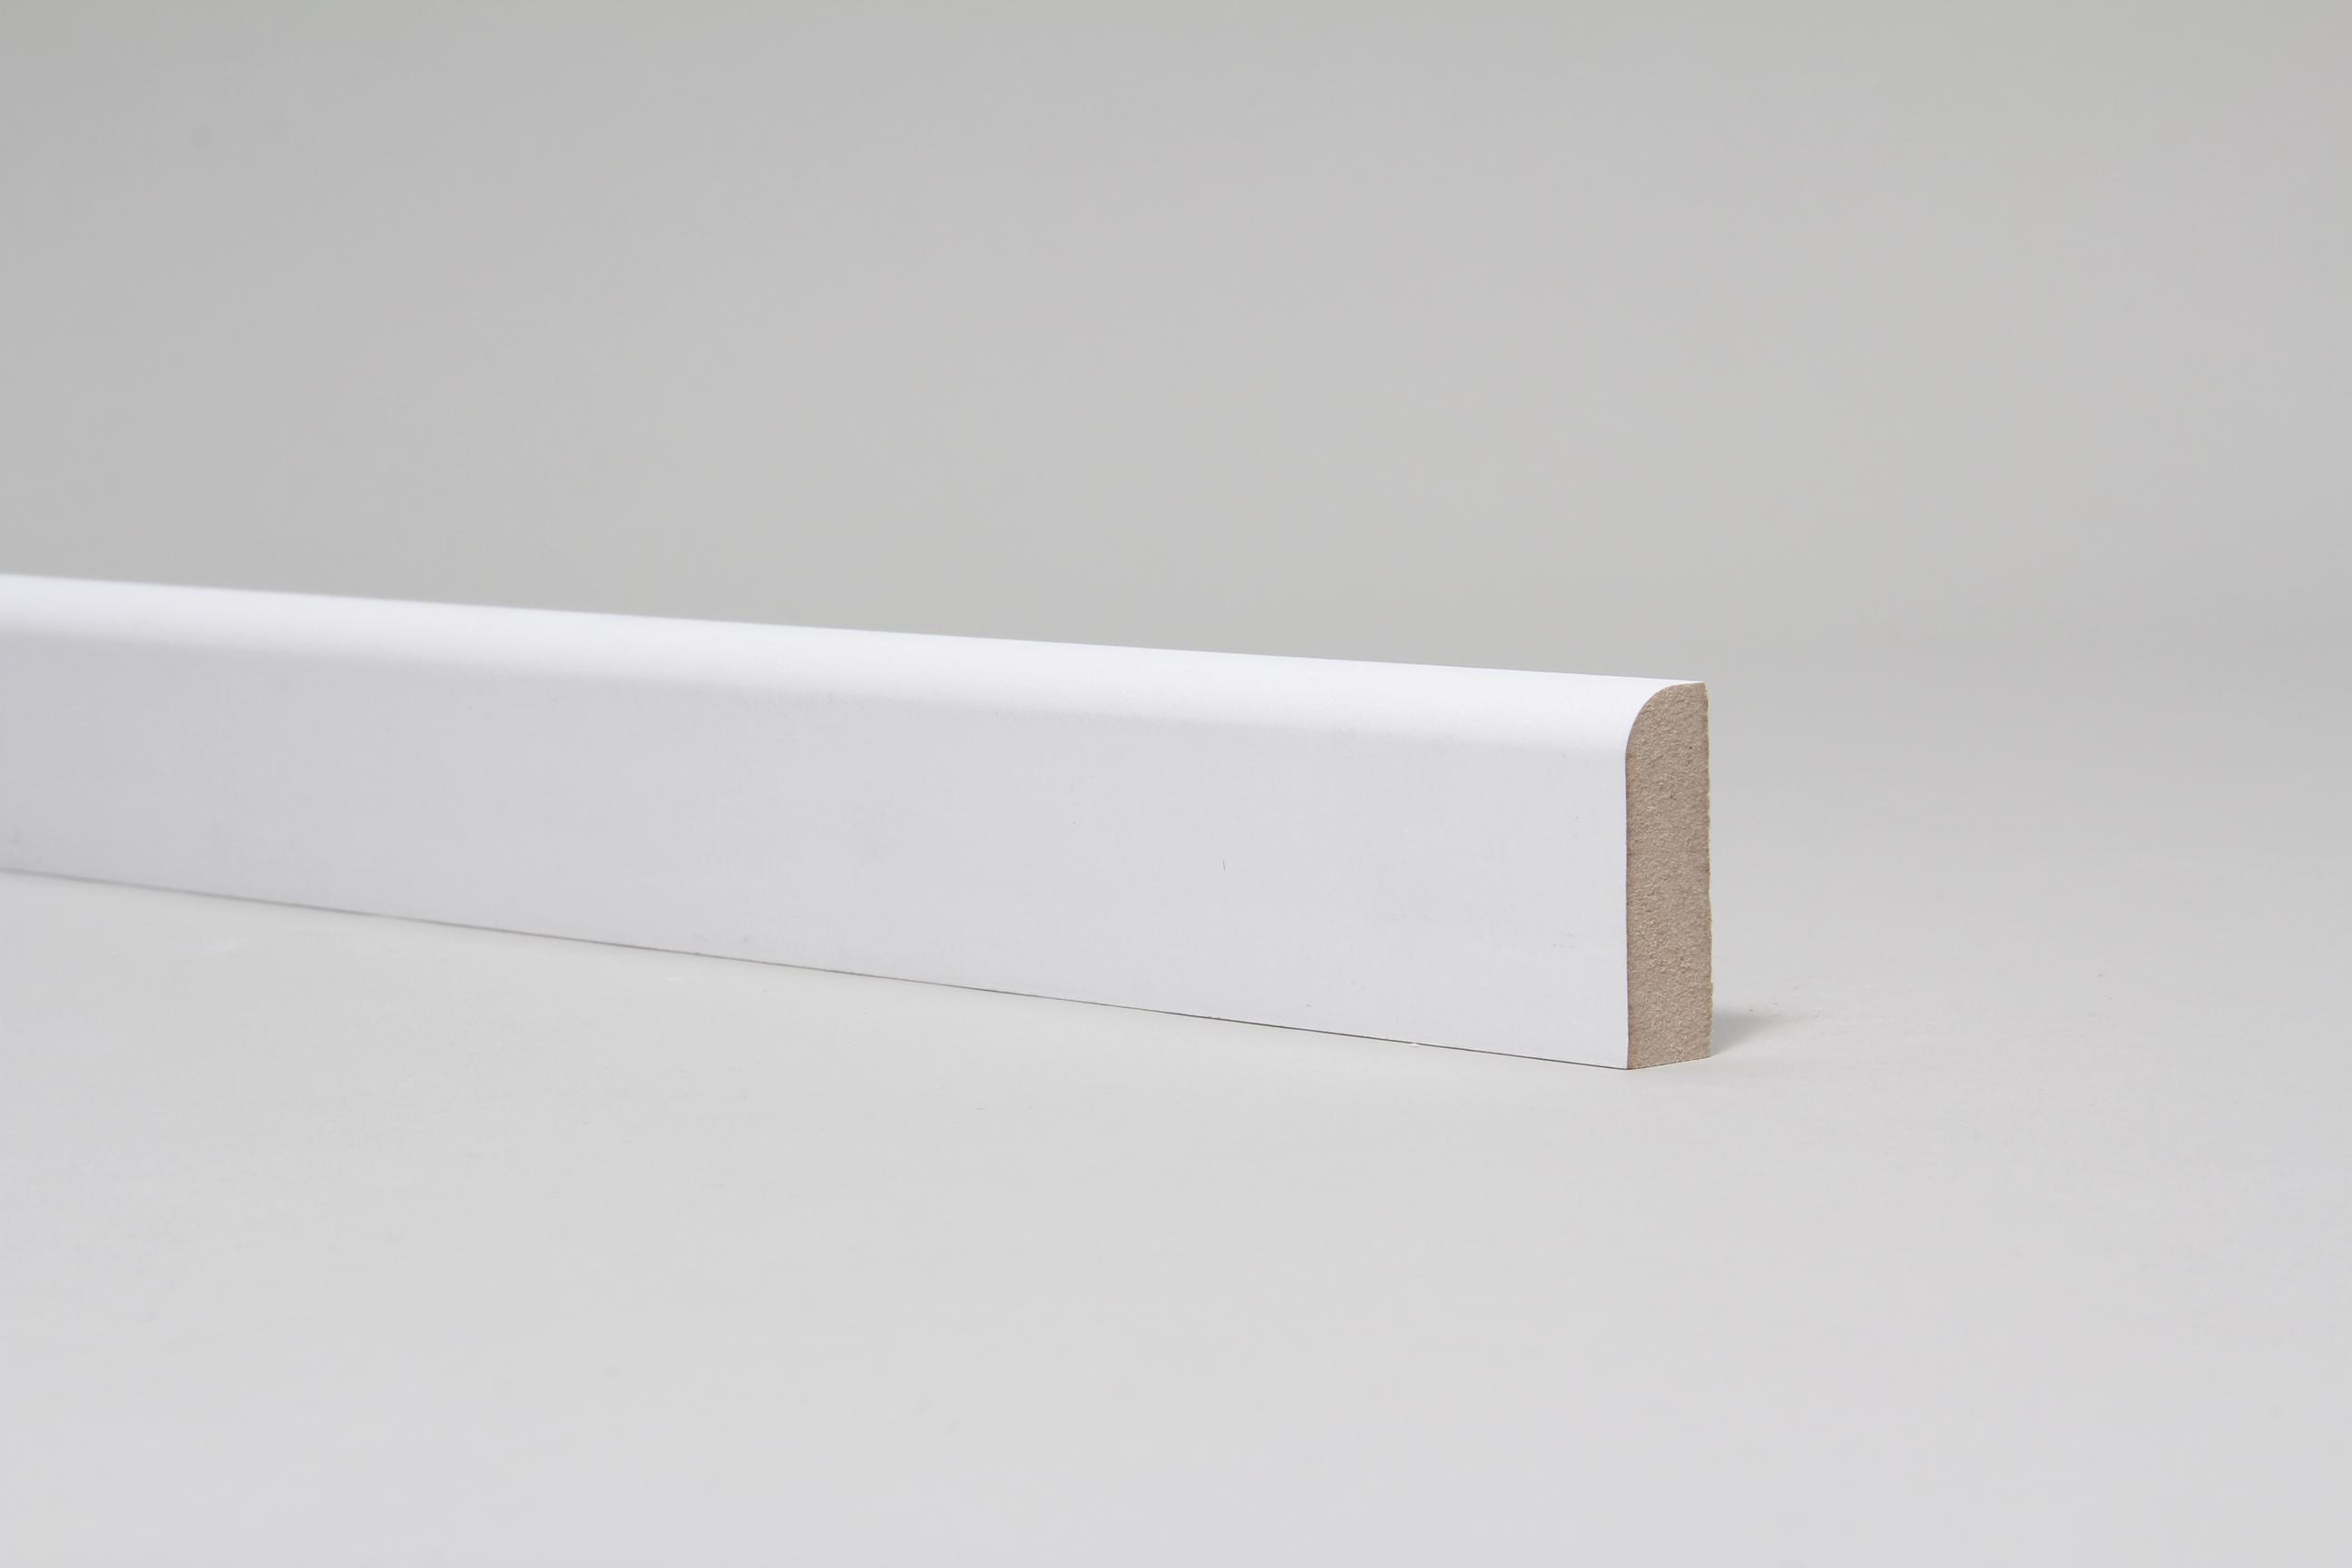 Rounded One Edge 15mm x 44mm Architrave Set Primed